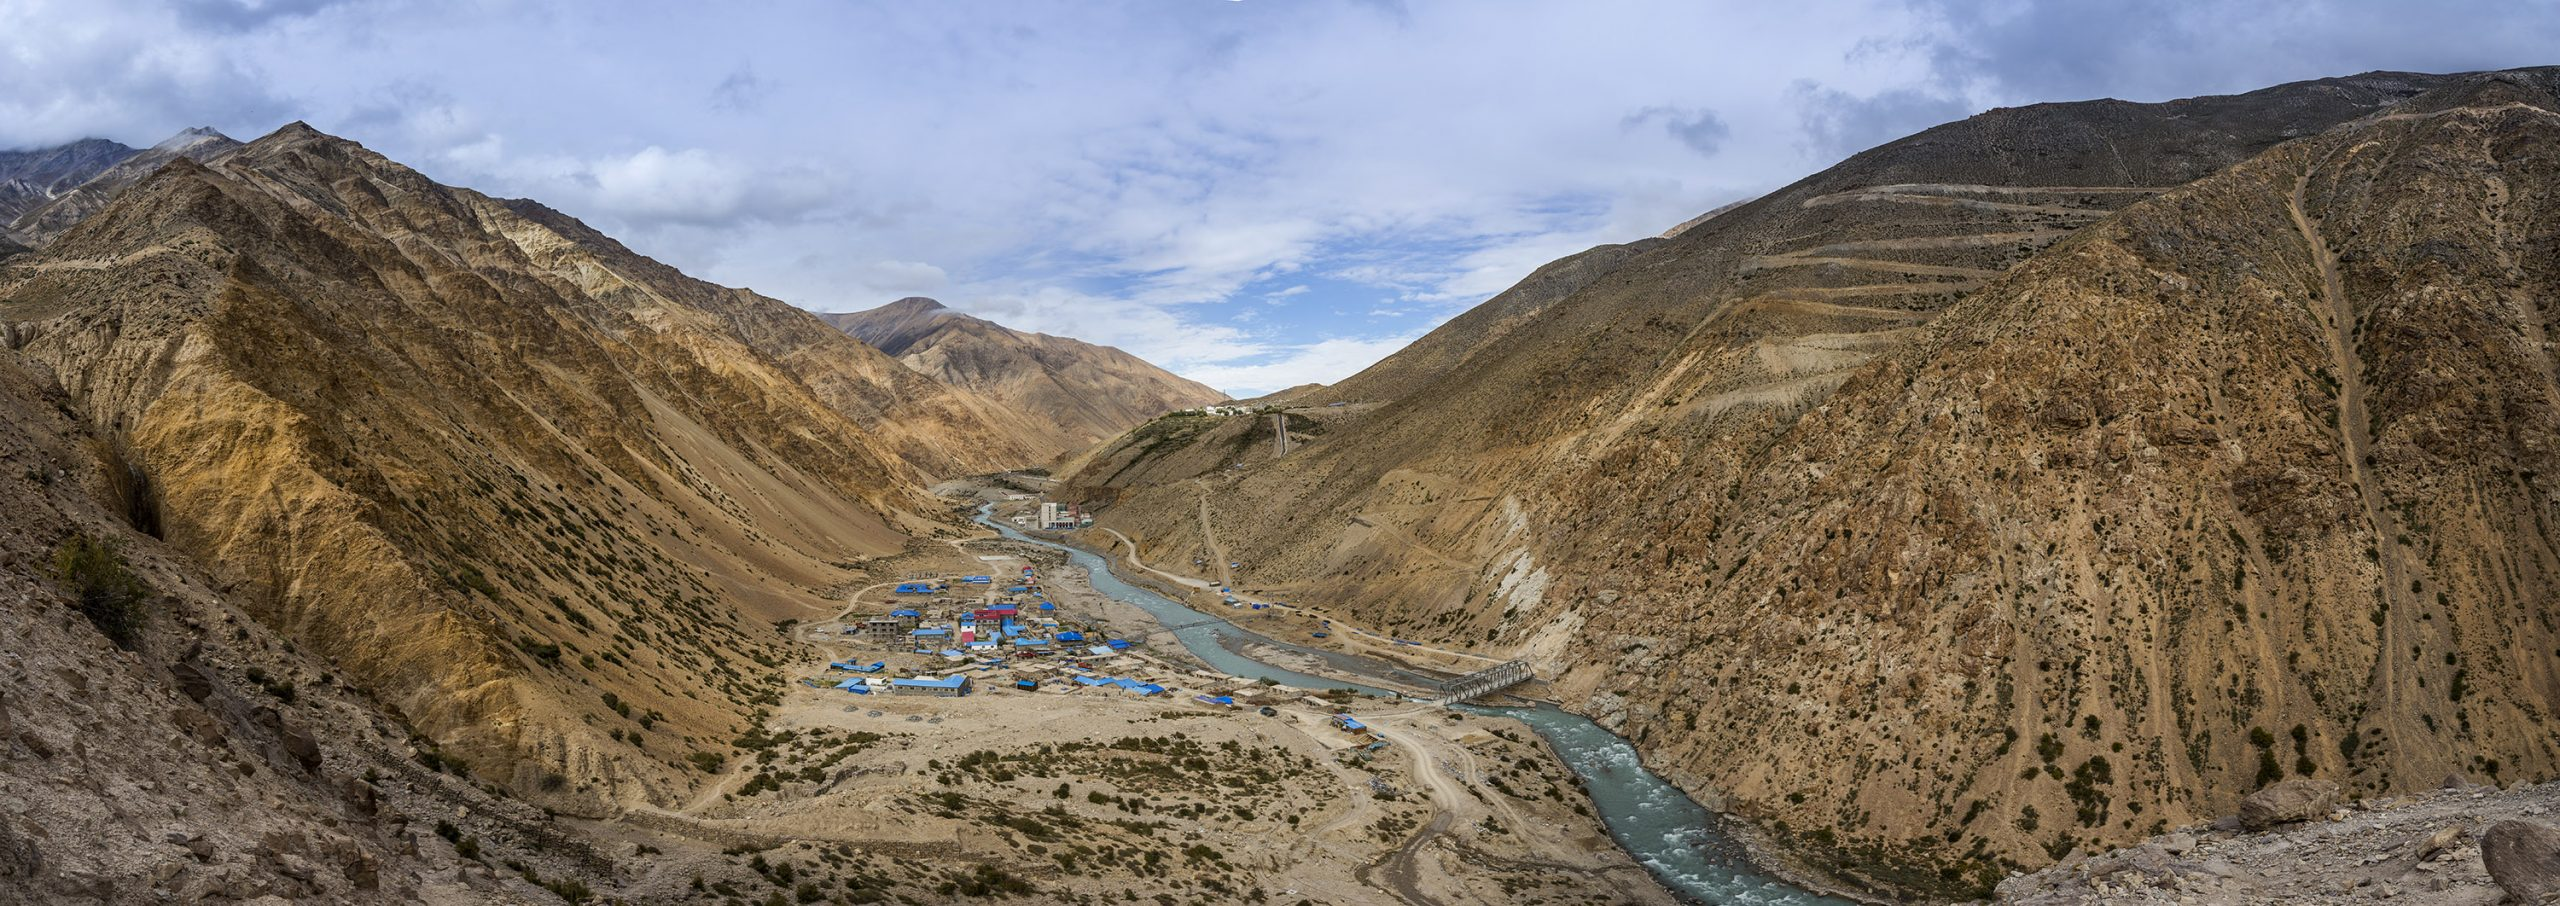 Kailash Confluence 2021: The road to prosperity